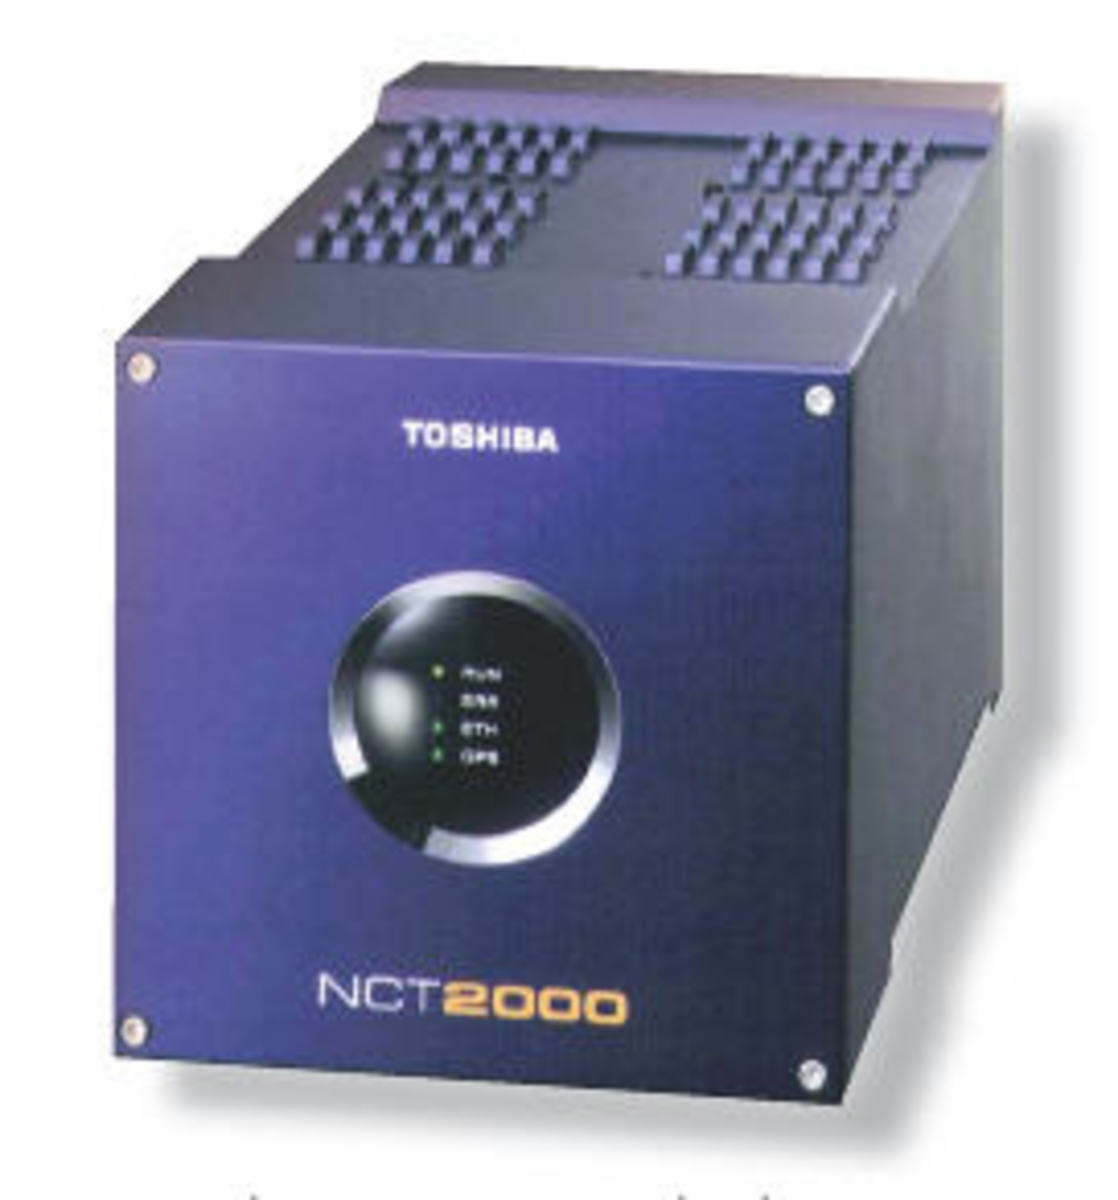 The Toshiba Networking Computing Terminal is a device for monitoring electric . Fault locating fo multi-terminal transmission line power systems utilizing an embedded real-time OS and JAVA Virtual Machine